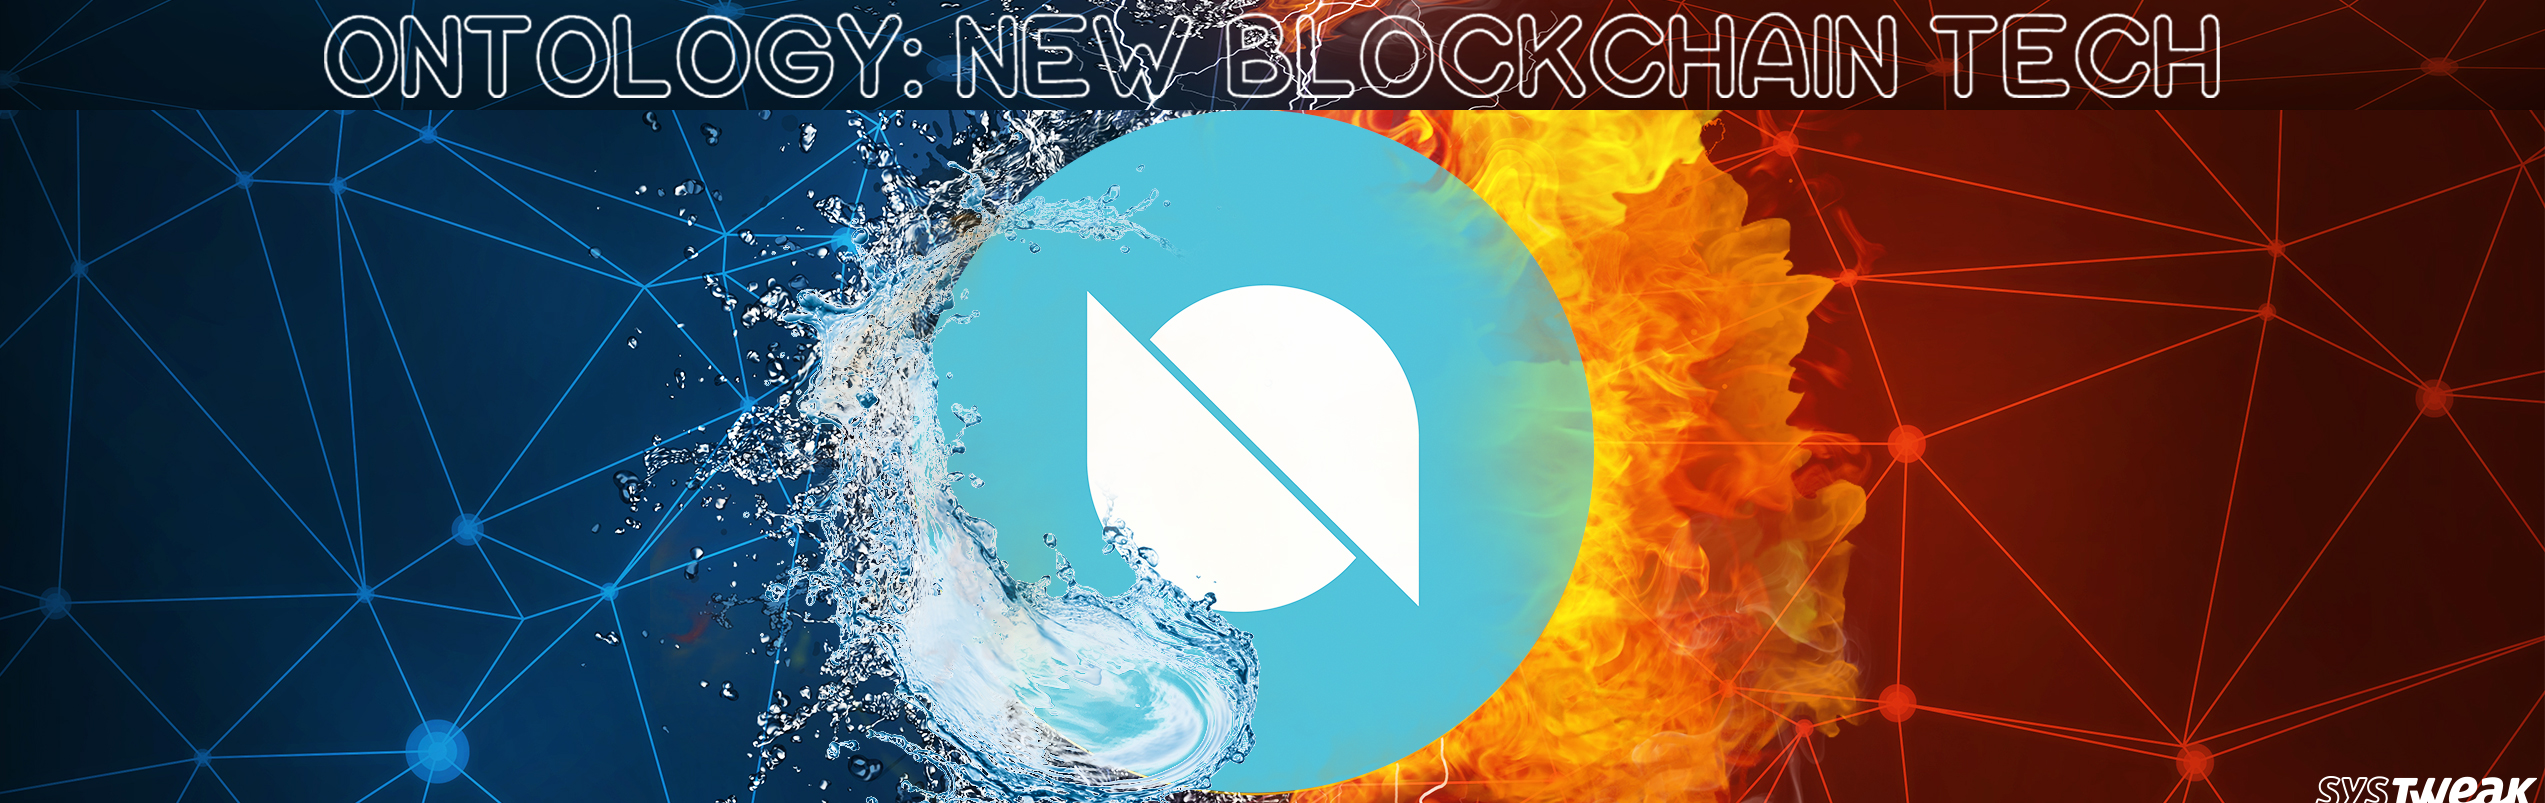 Ontology and Everything About It!